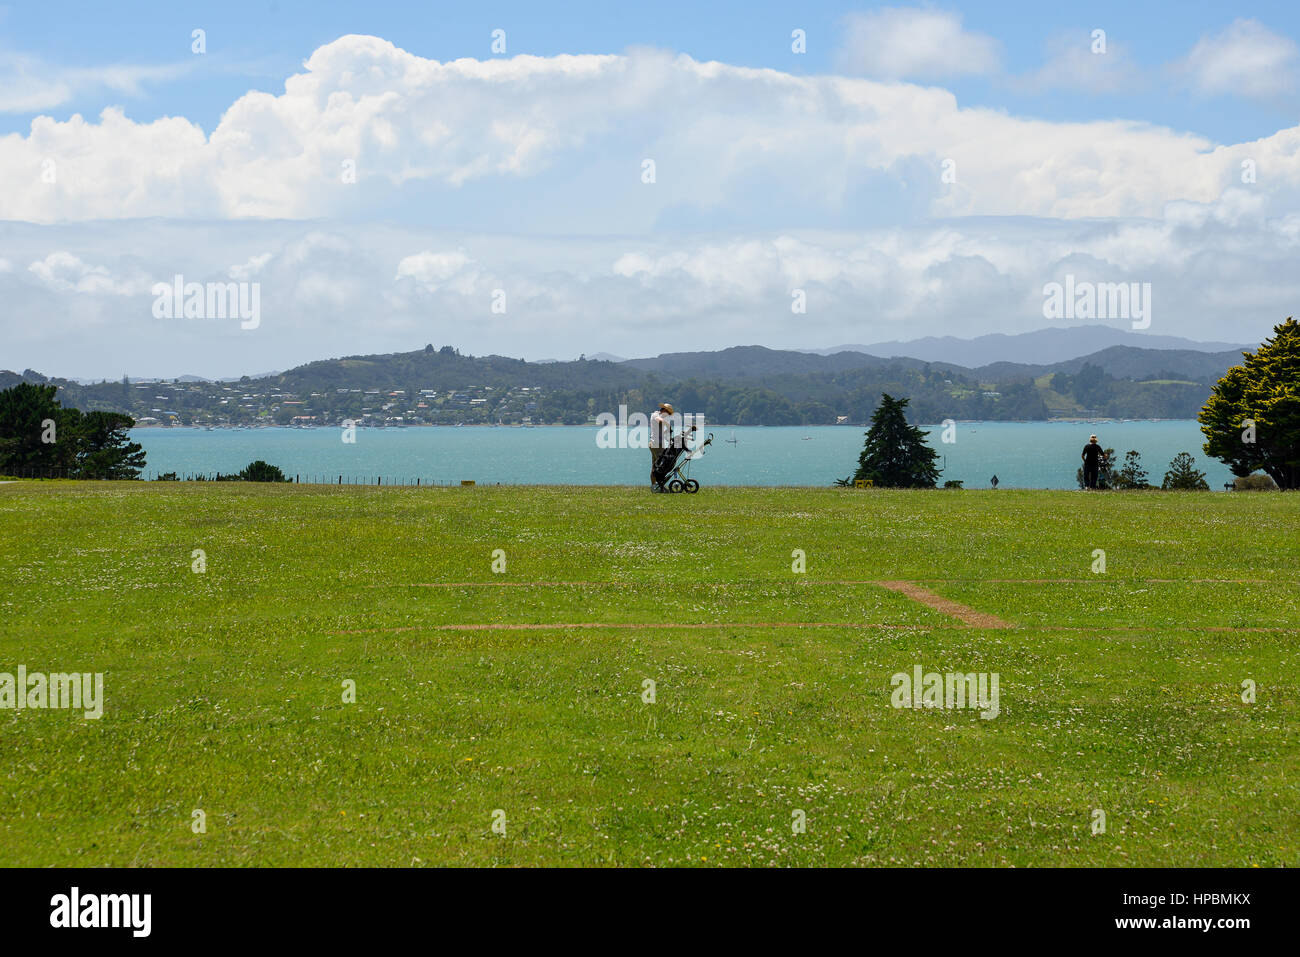 Playing golf at Waitangi Golf Club with a view of Bay of Islands, New Zealand - Stock Image